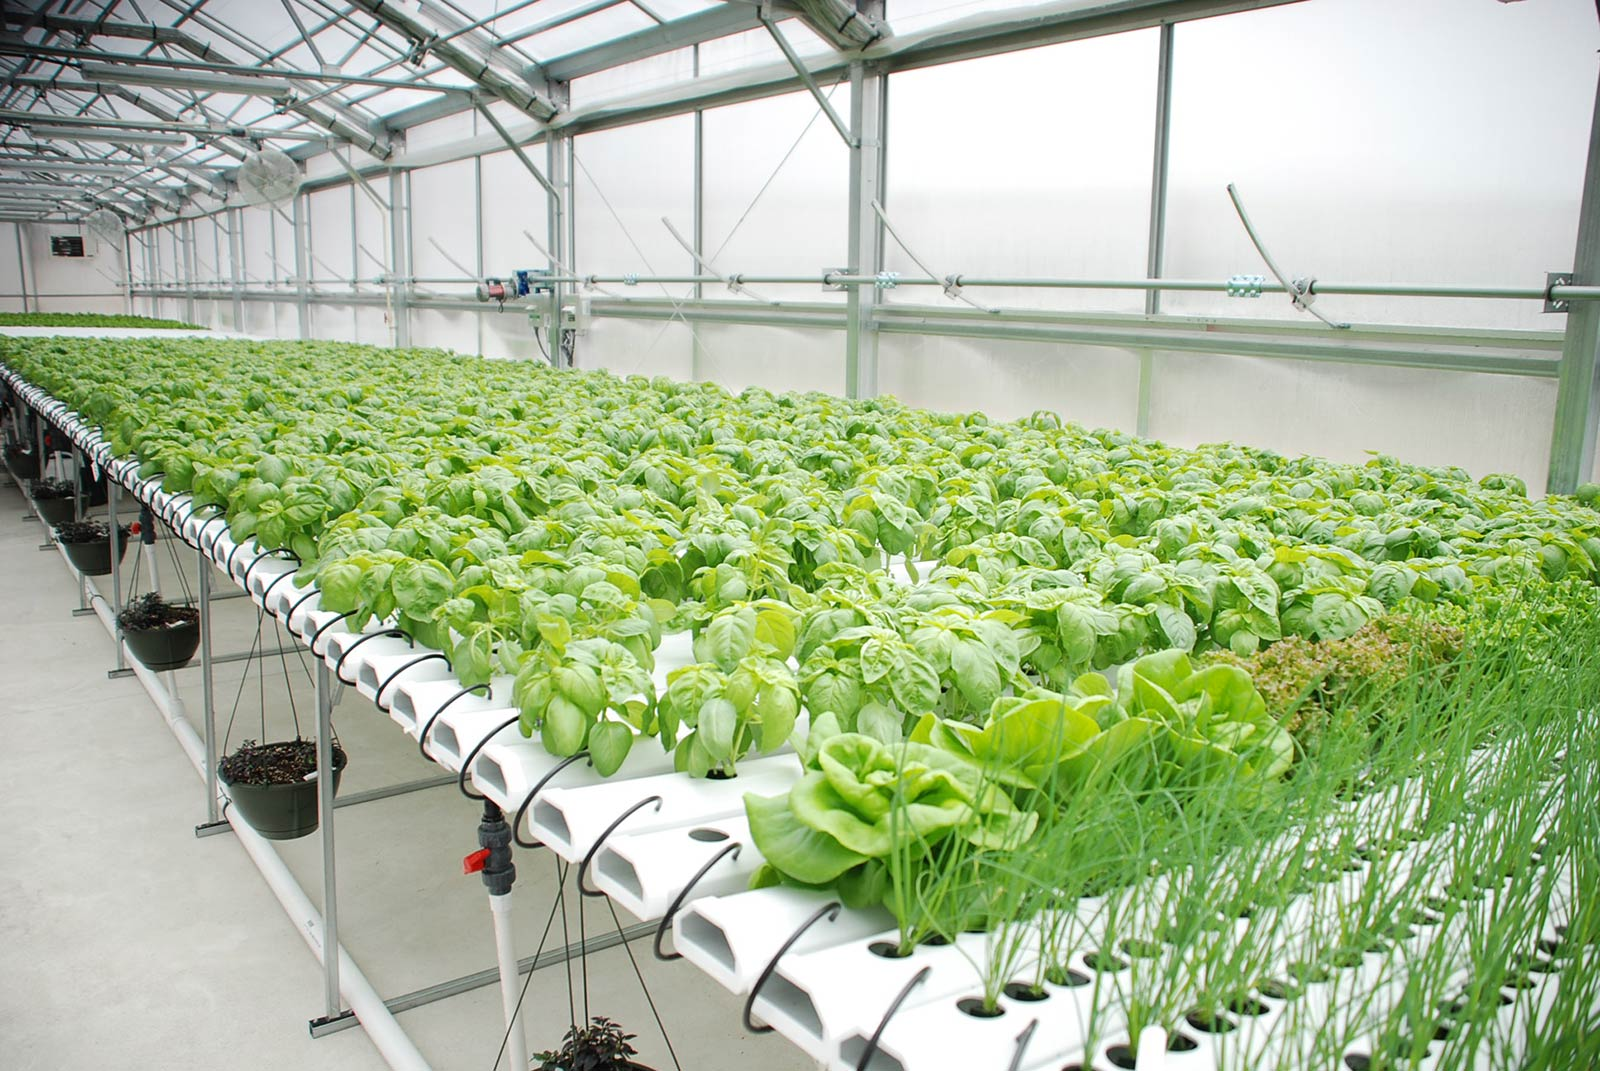 hydroponic greenhouse rimol greenhouses Commercial Hydroponic Systems Design id=15847